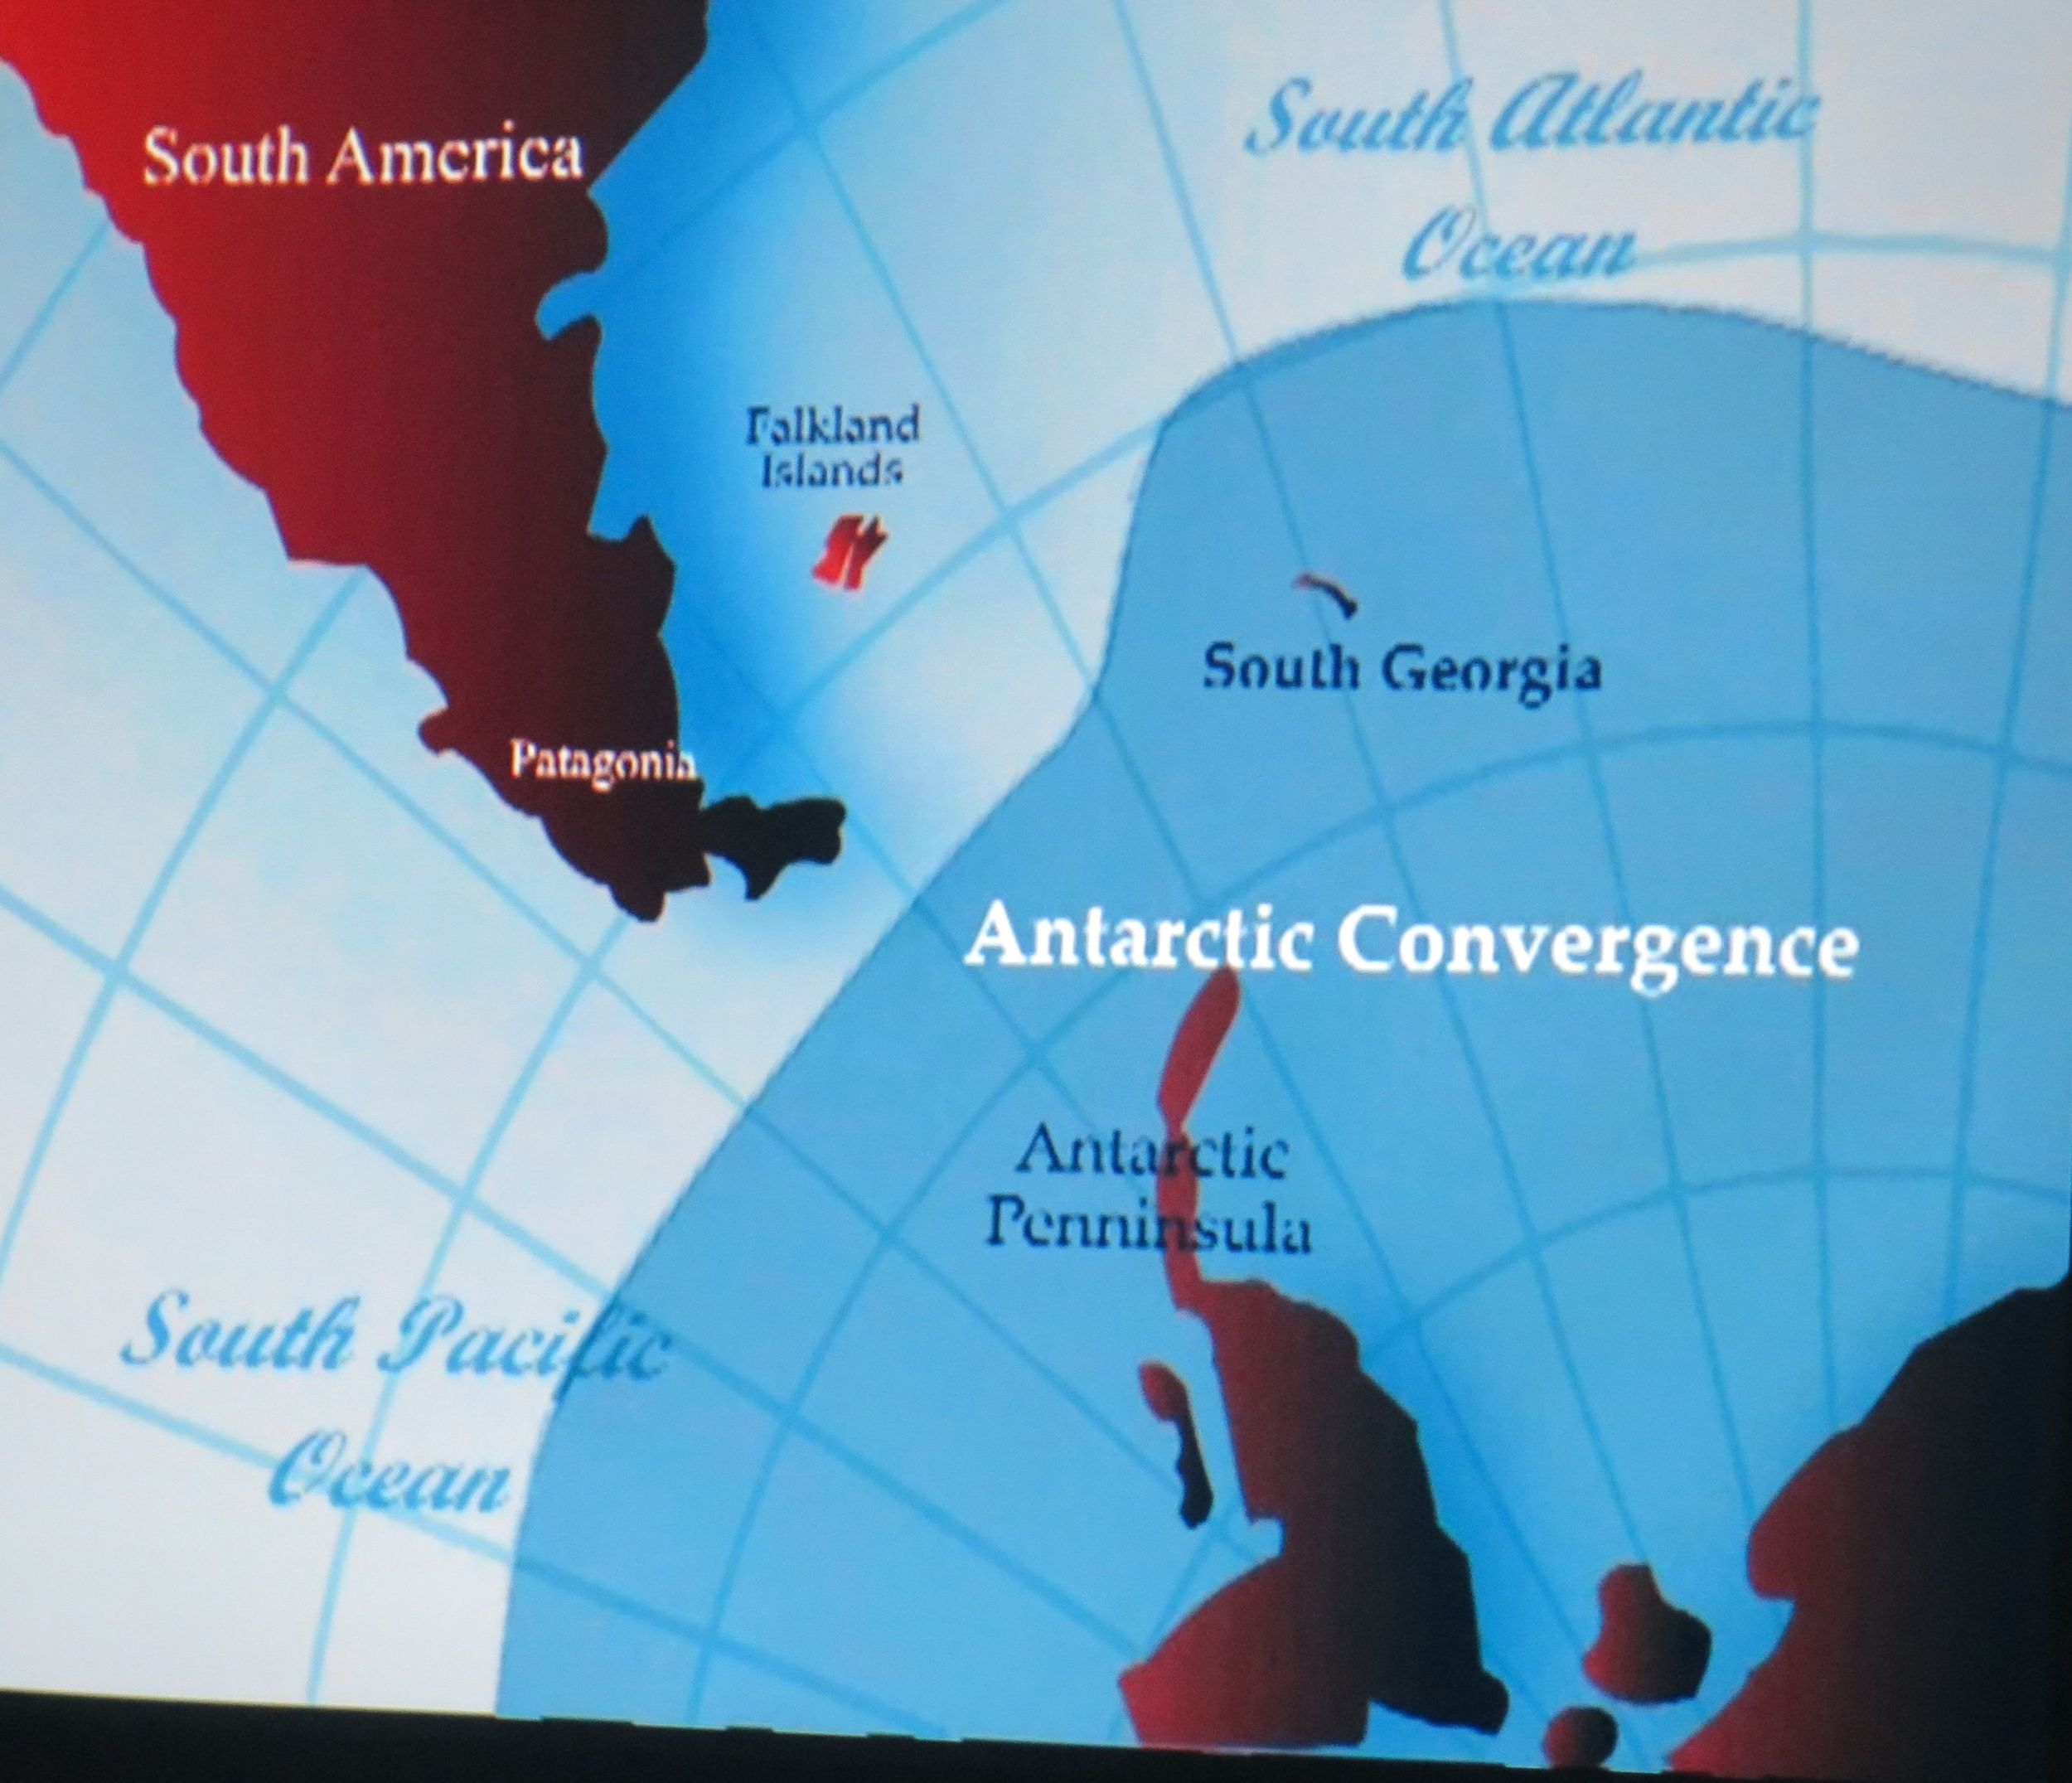 How is the Antarctic defined? Many scientists will tell you it begins not at 66 degrees south latitude (the start of the geographical Antarctic Circle) but at the more northerly and varying line of the convergence, where warm and cold oceans meet, the Antarctic environment starts and the sea becomes richer with churned-up nutrients, feeding a profusion of marine wildlife and birds.